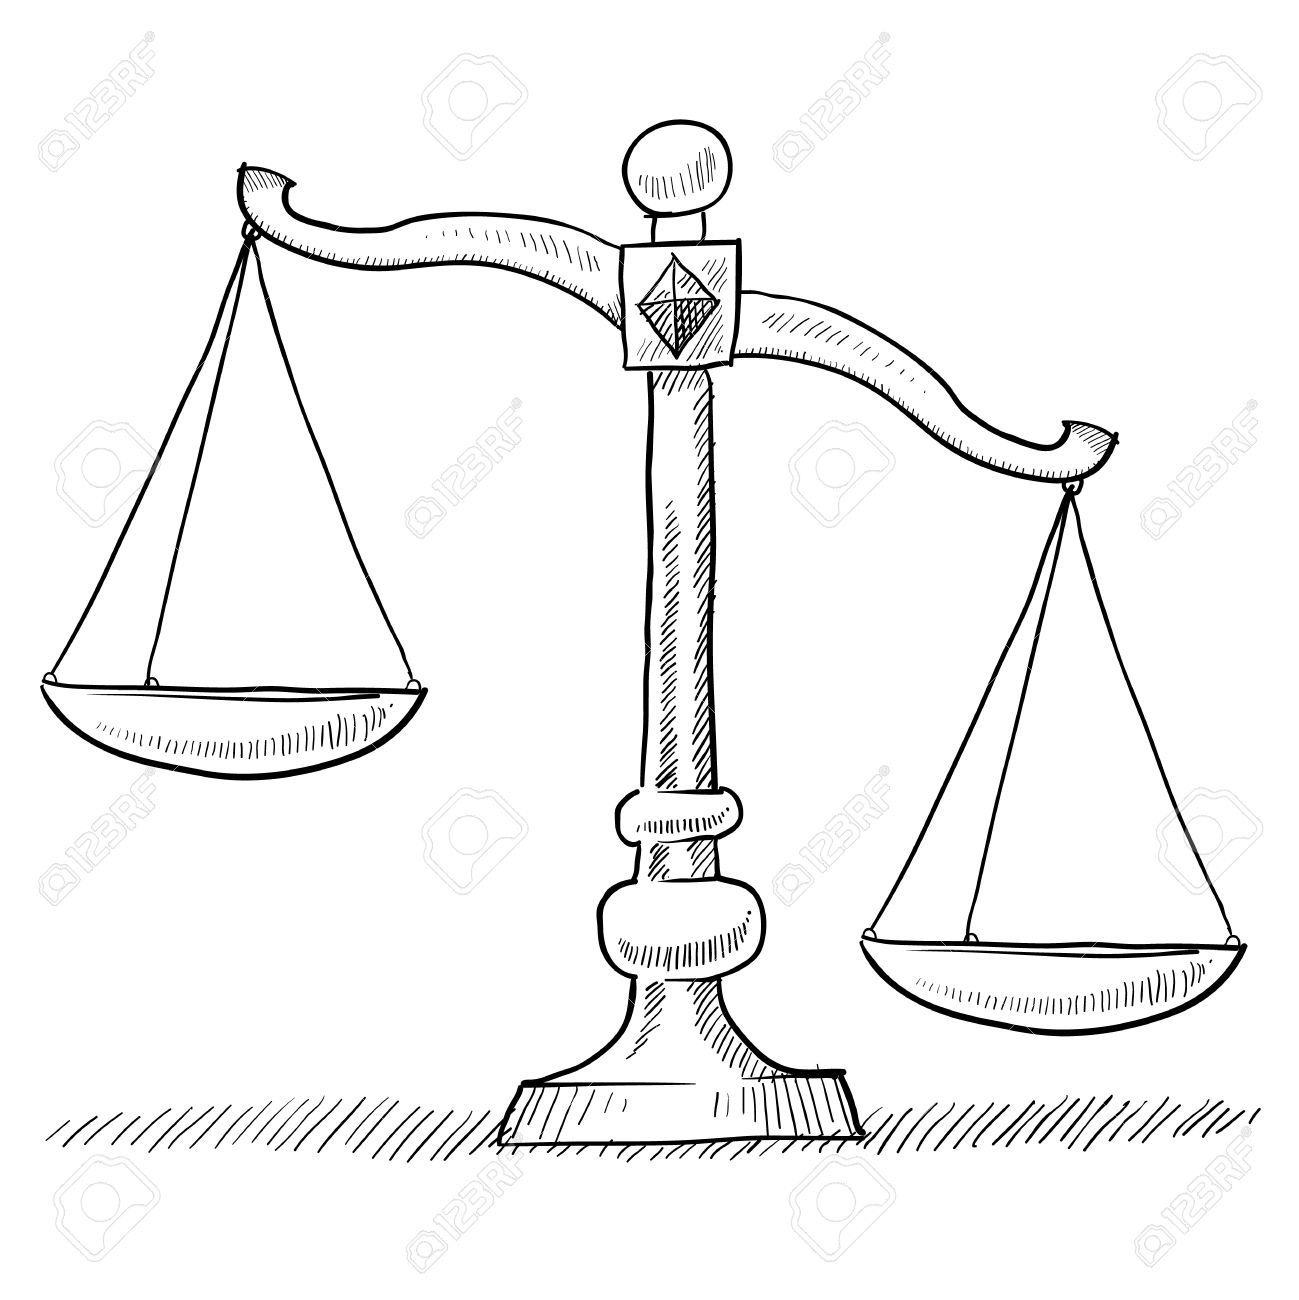 Image Result For Justice Scale Drawing